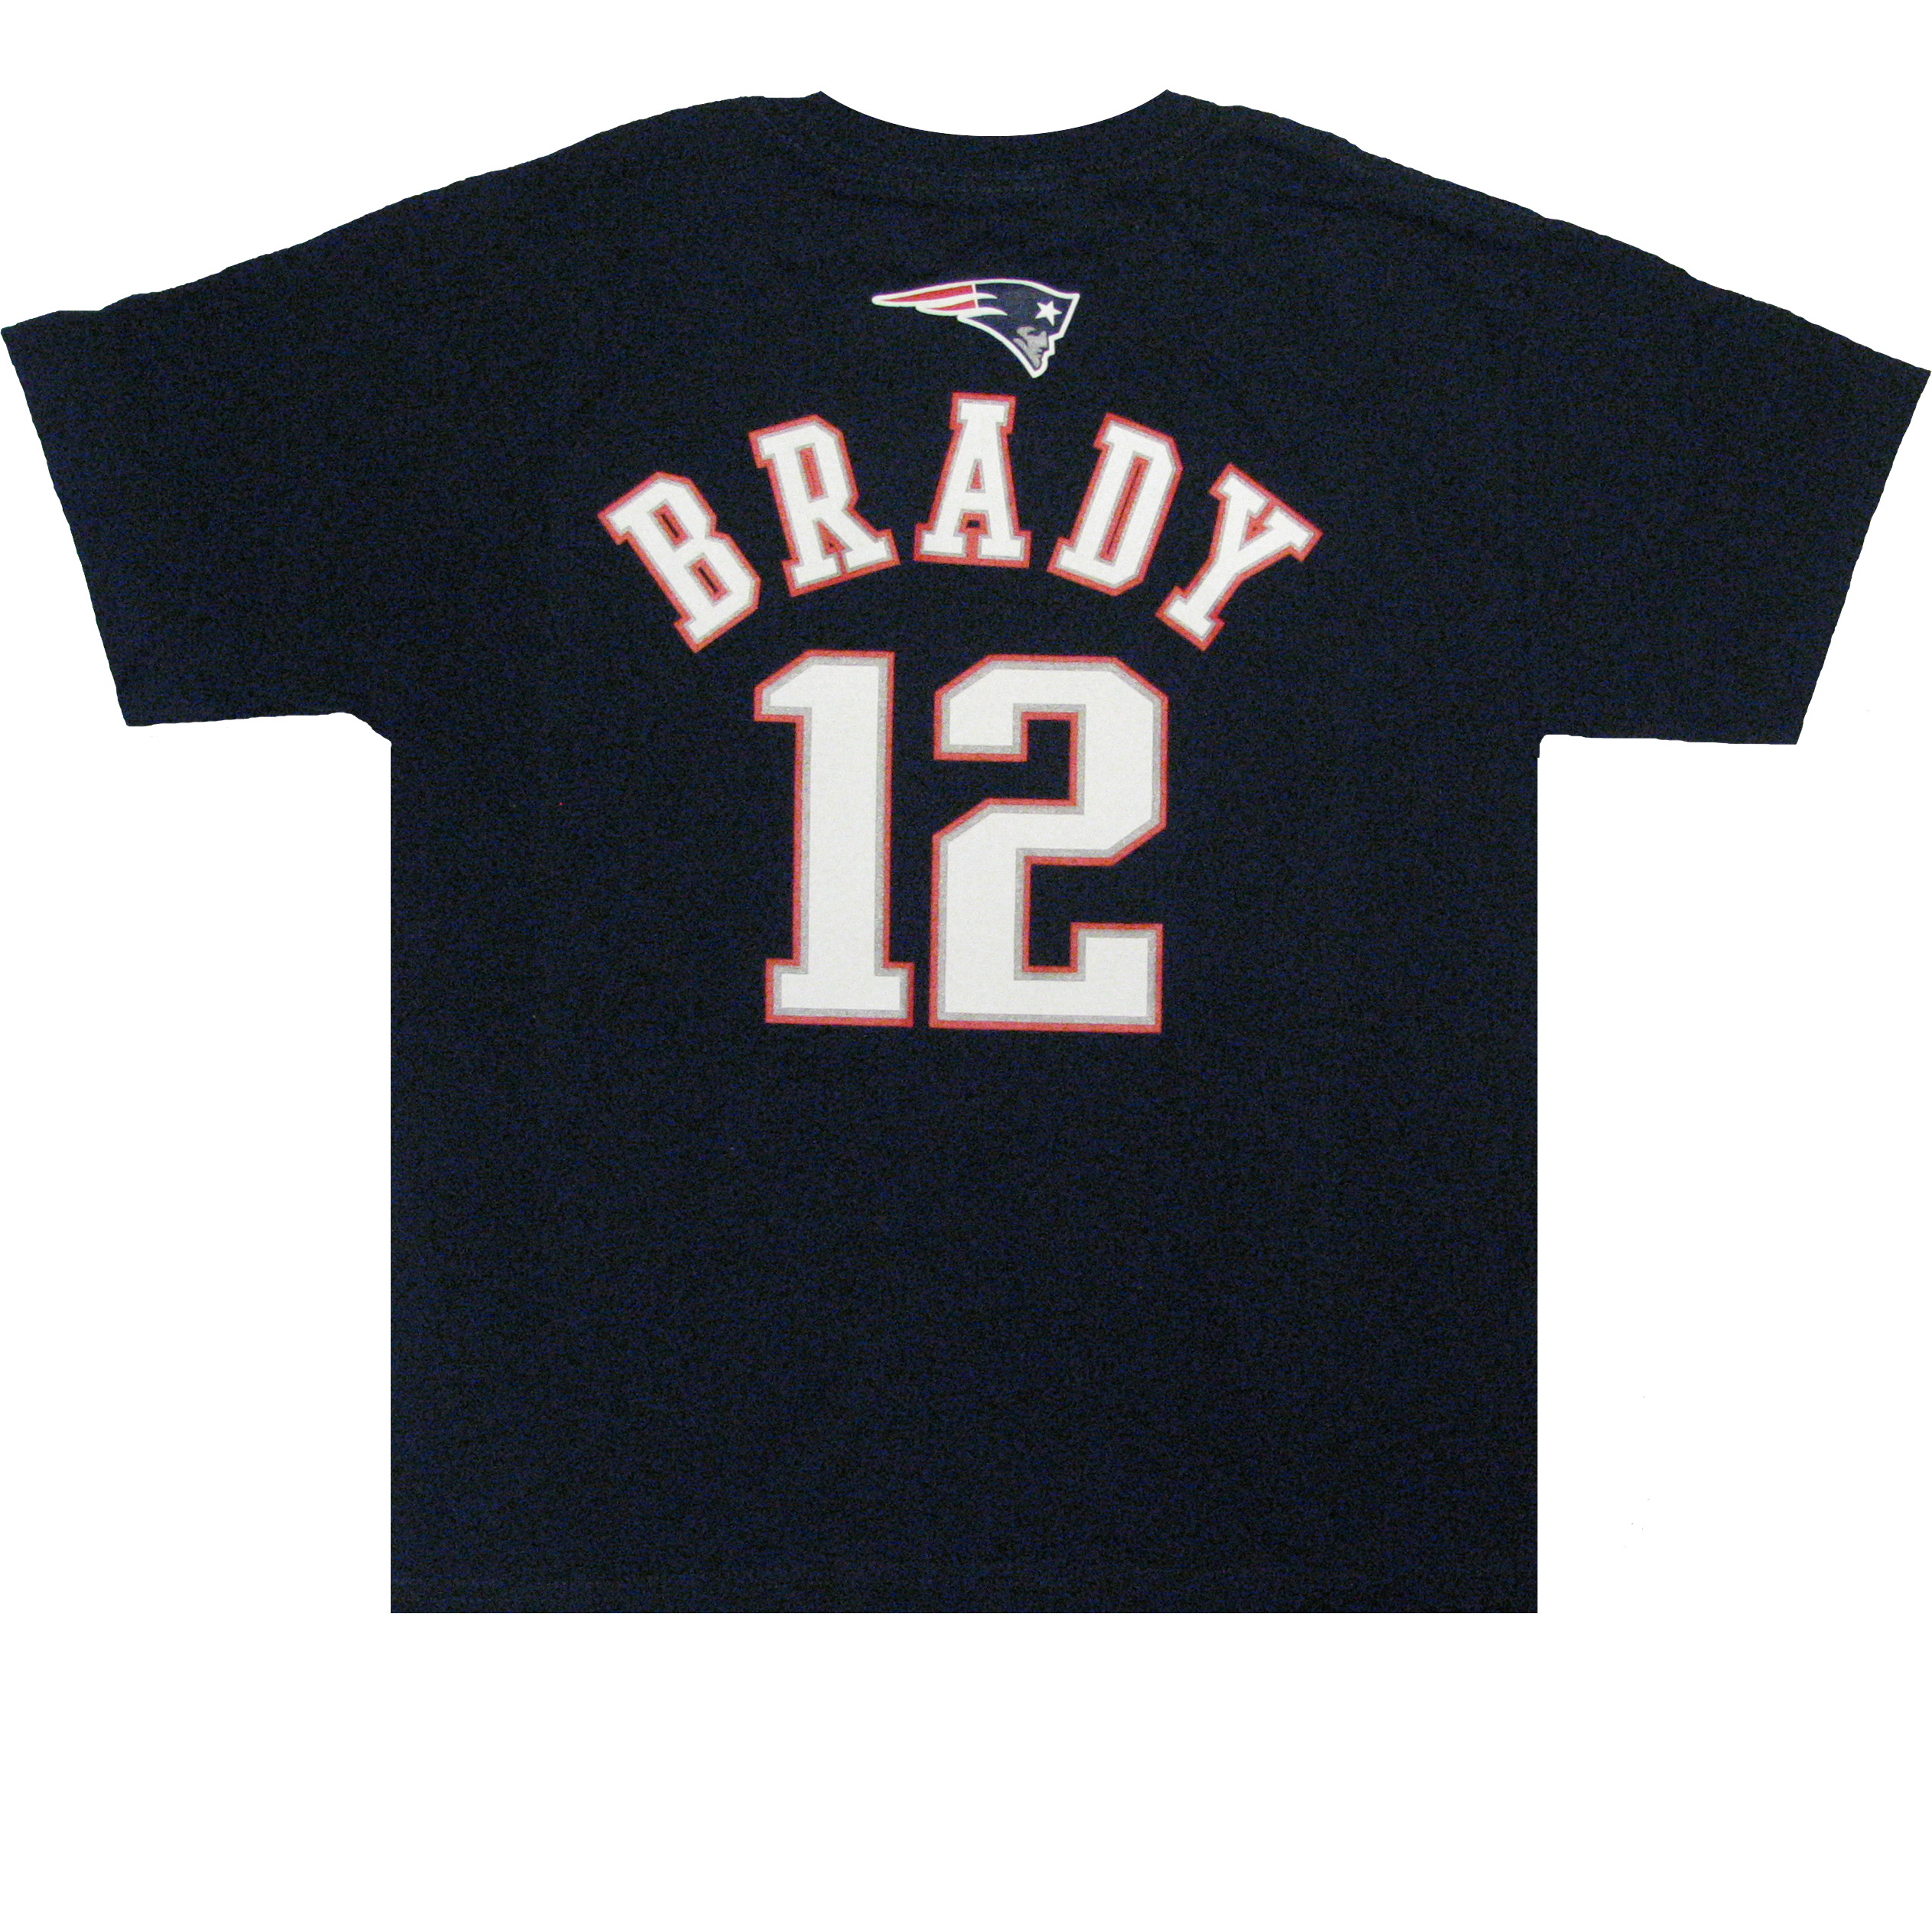 Youth Brady Name and Number Tee